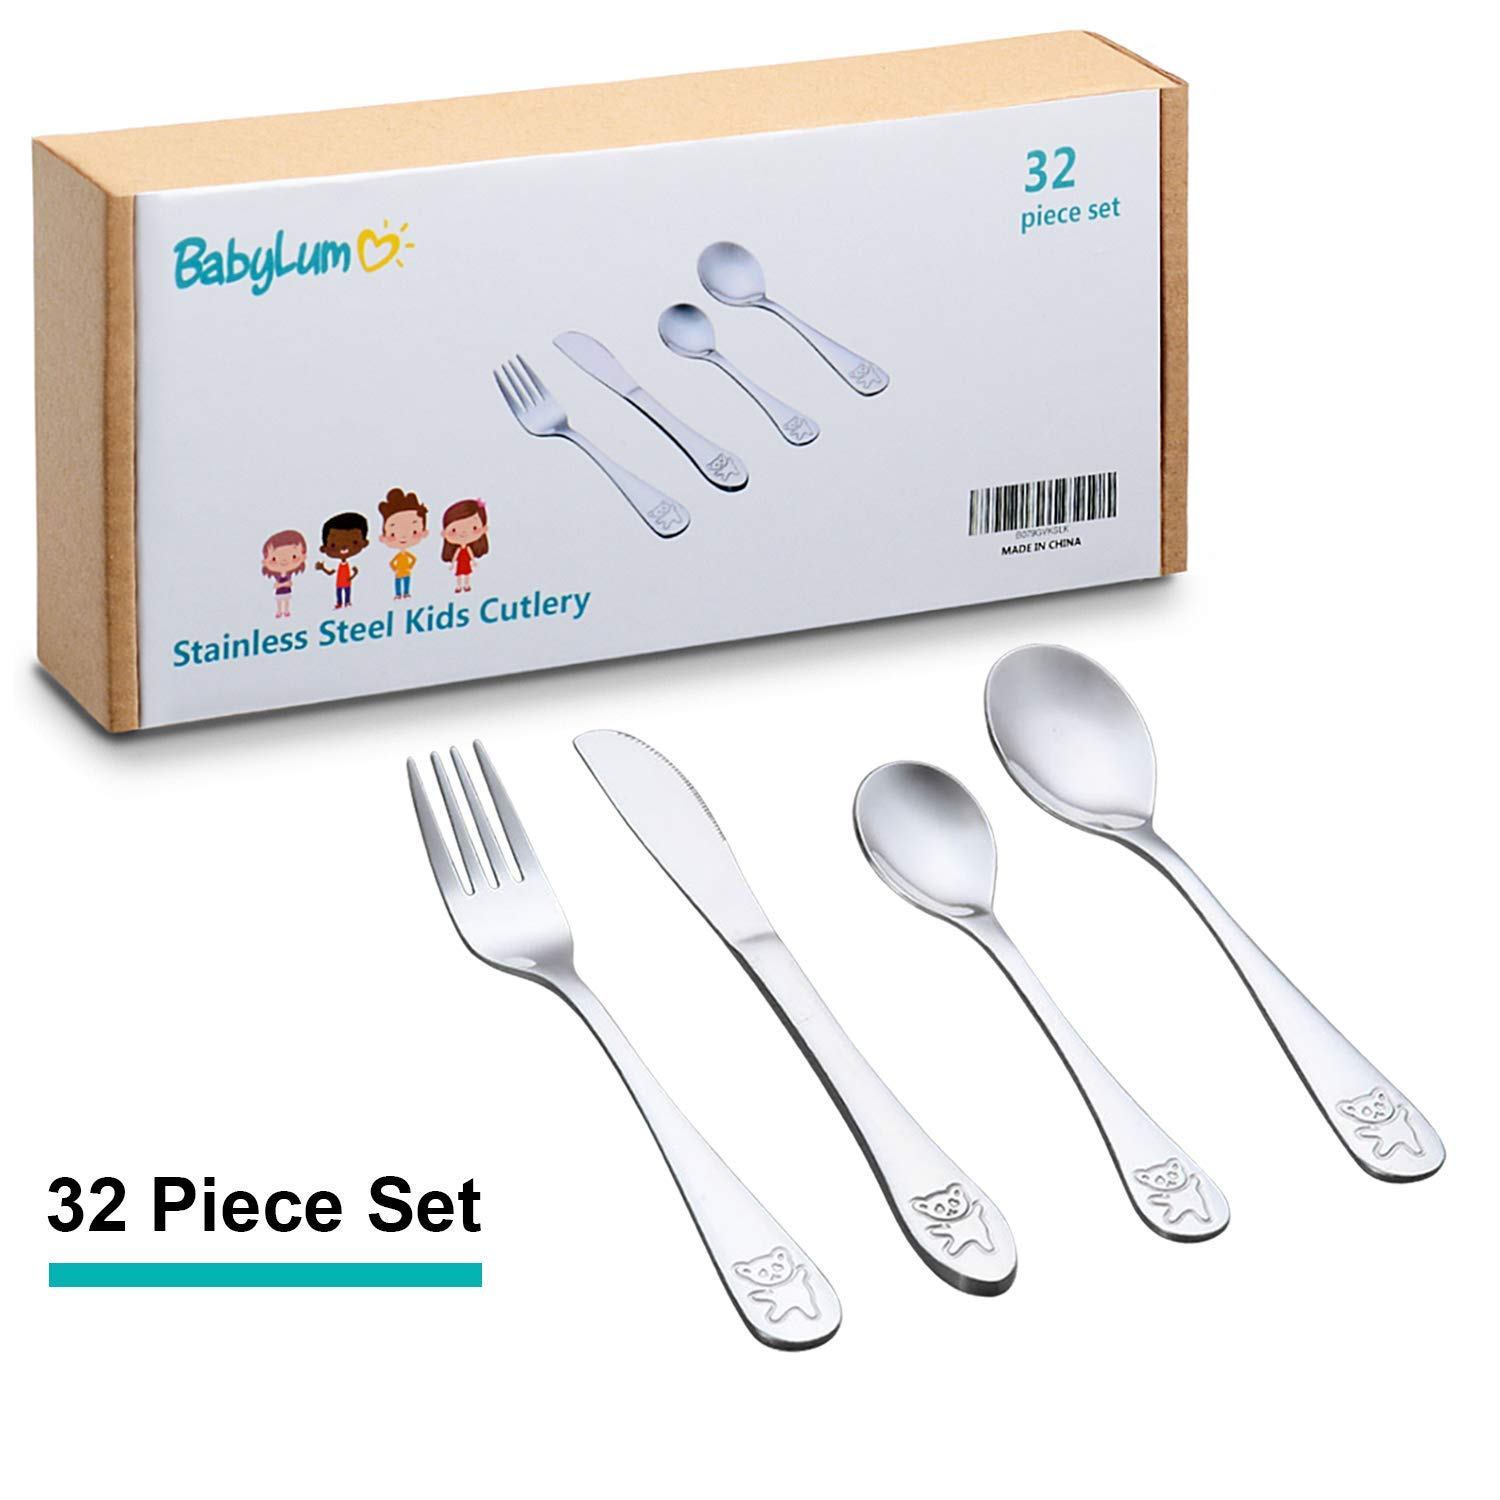 32 Piece Utensils Set for Kids, Stainless Steel Cutlery Flatware, Safe Silverware for Toddler and Child, Total 8 Place Settings with 8 Knives, 8 Forks, 8 Spoons, 8 Dessert Spoons. (Set of 32) BabyLum